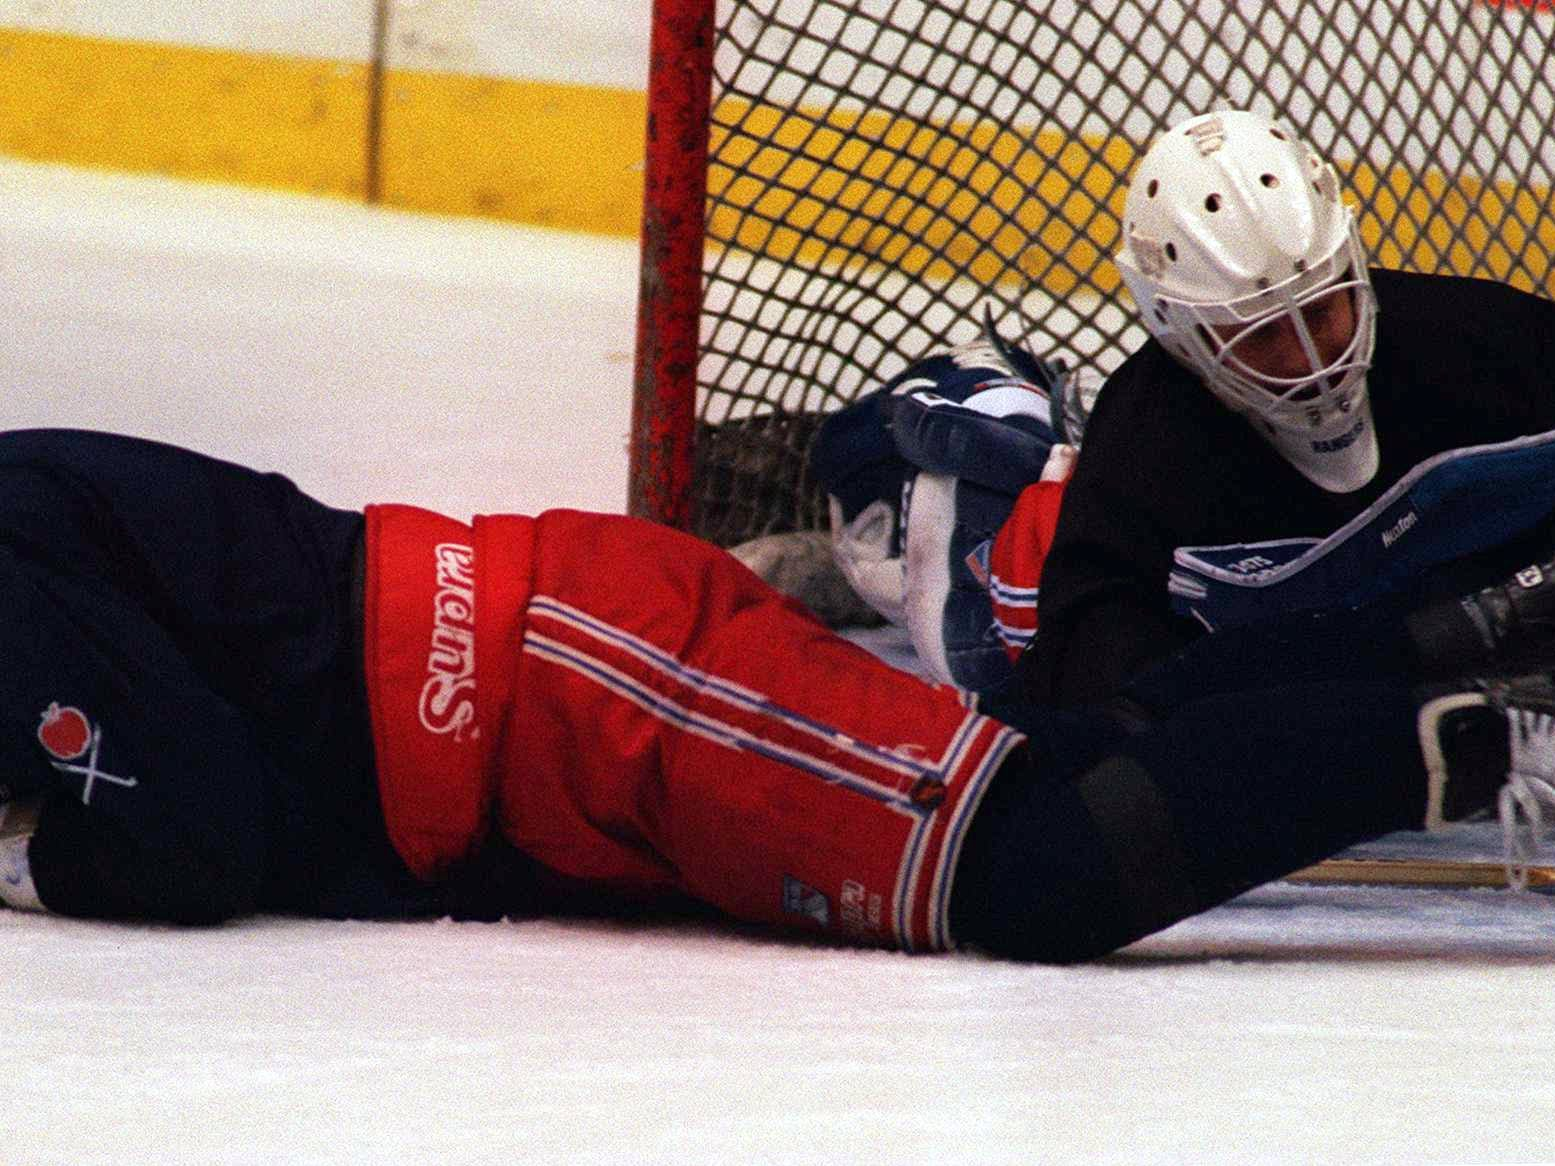 6 Jun 1994: RANGERS FORWARD ALEXEI KOVALEV, LEFT, RECOVERS FROM A LIGHT COLLISION WITH GOALTENDER COREY HIRSCH DURING TEAM WORKOUTS AT THE PACIFIC COLESIUM IN VANCOUVER, BRITISH COLUMBIA. THE RANGERS TAKE THEIR 2-1 SERIES LEAD OVER THE CANUCKS INTO GAME F